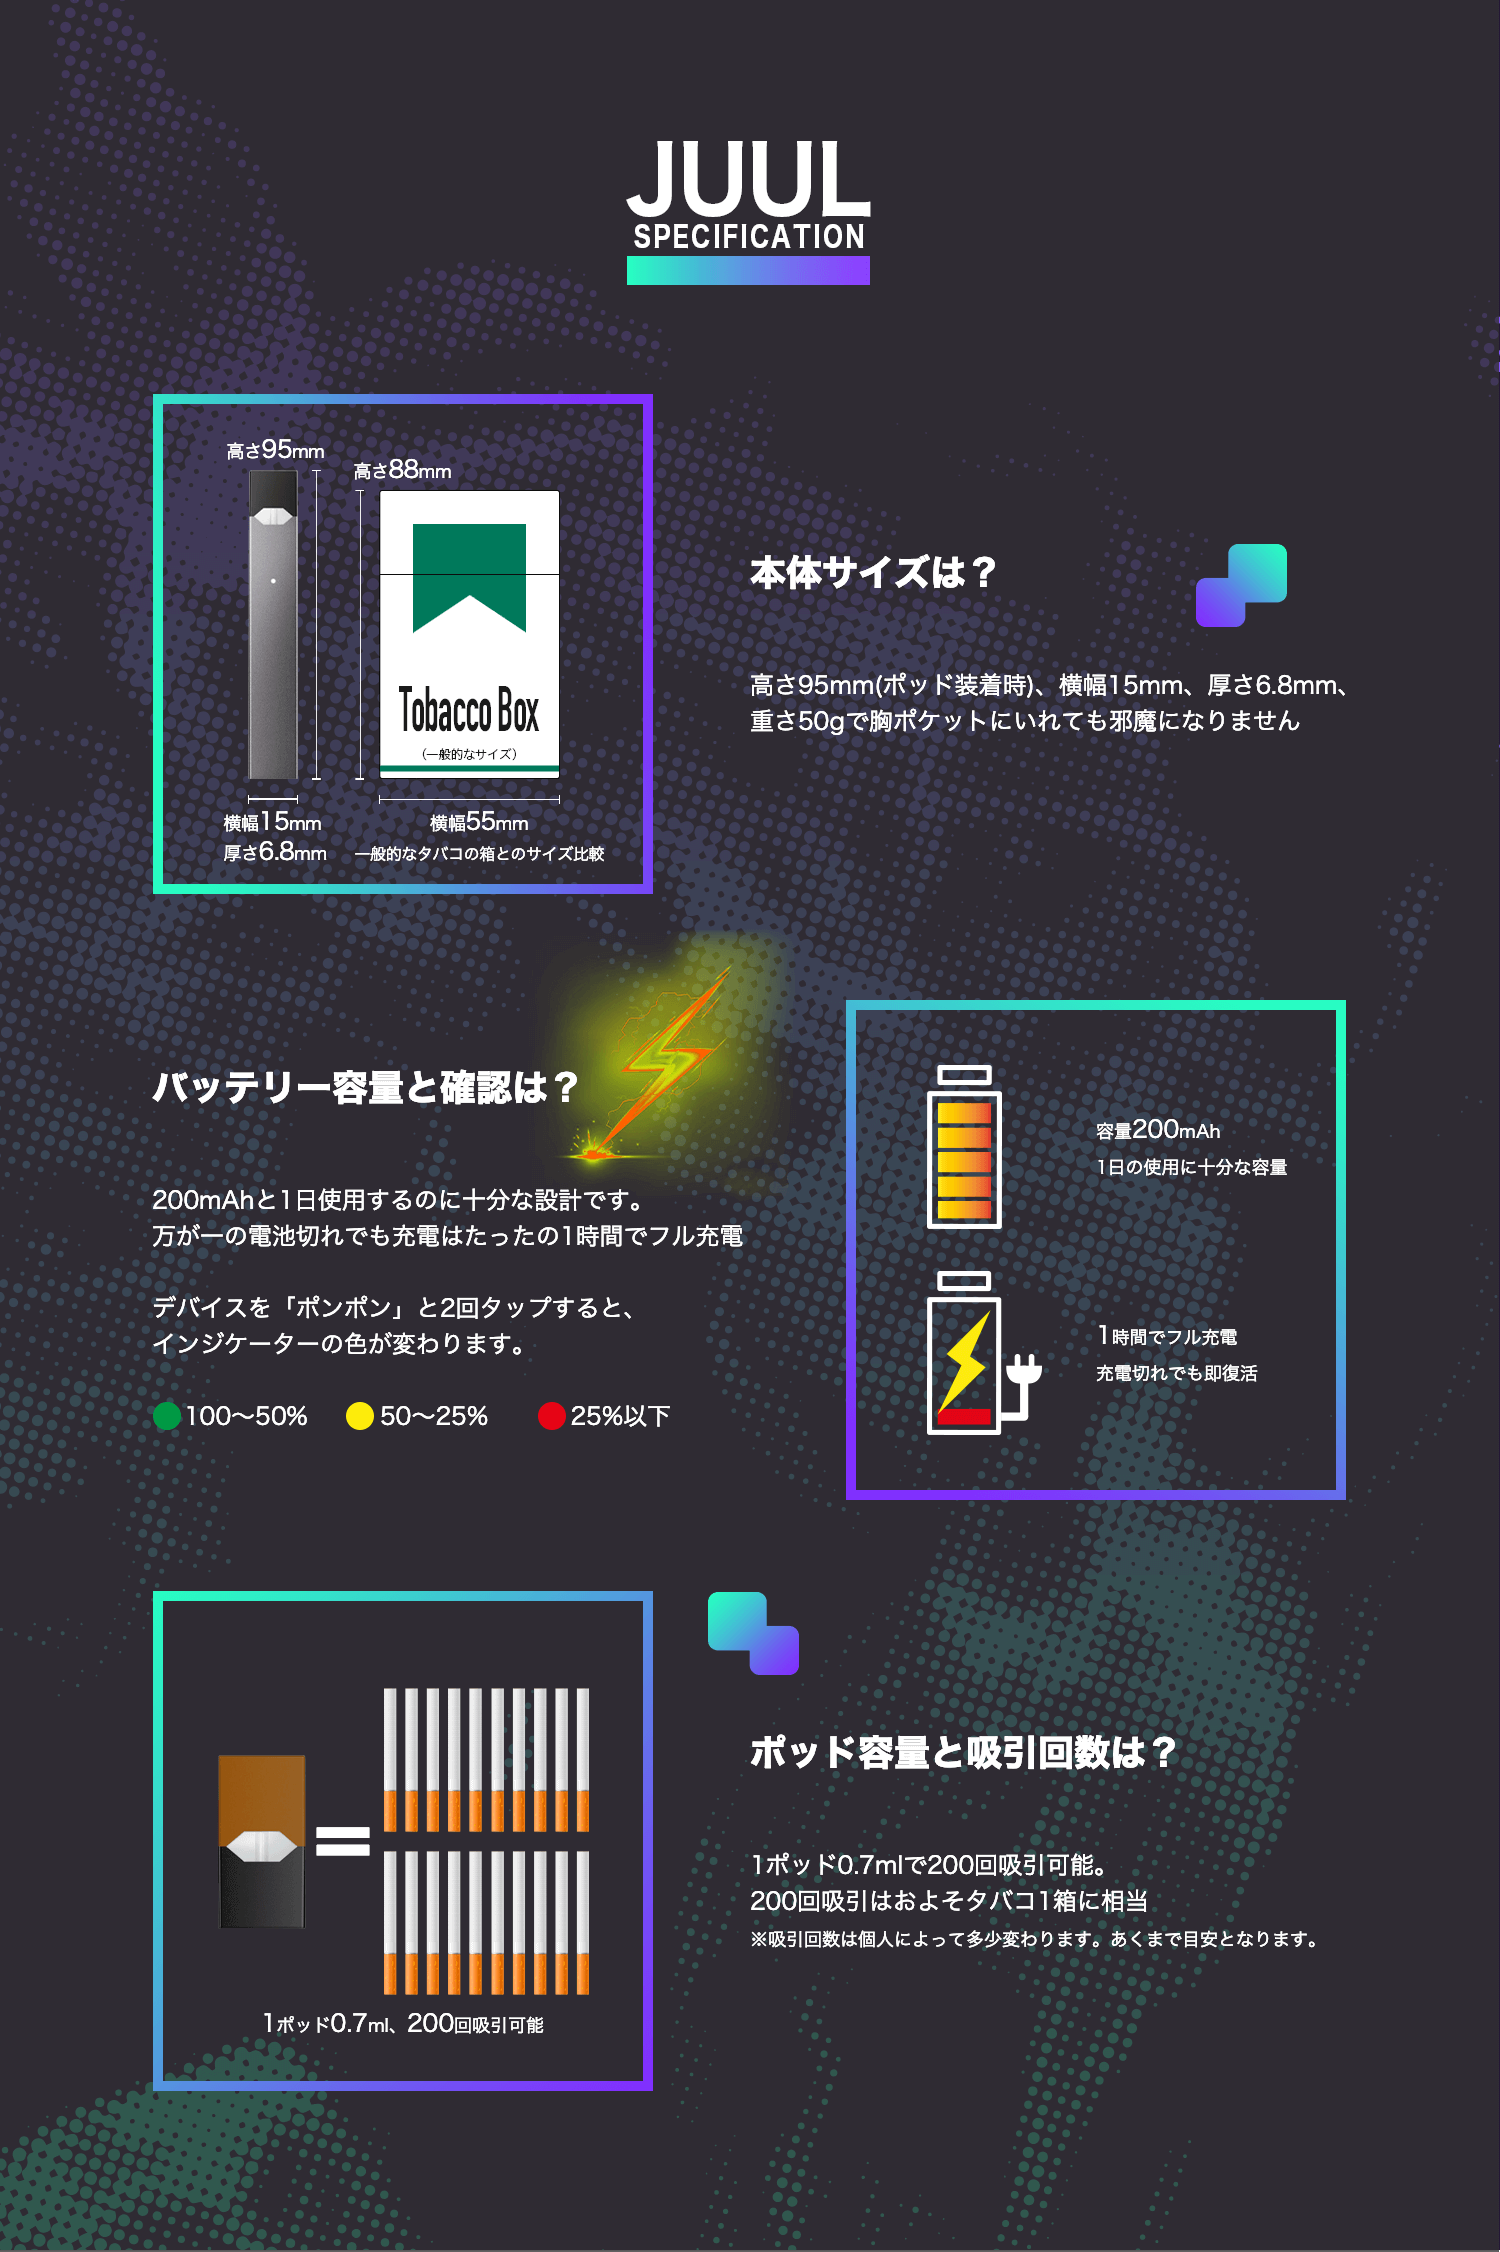 JUUL SPECIFICATION